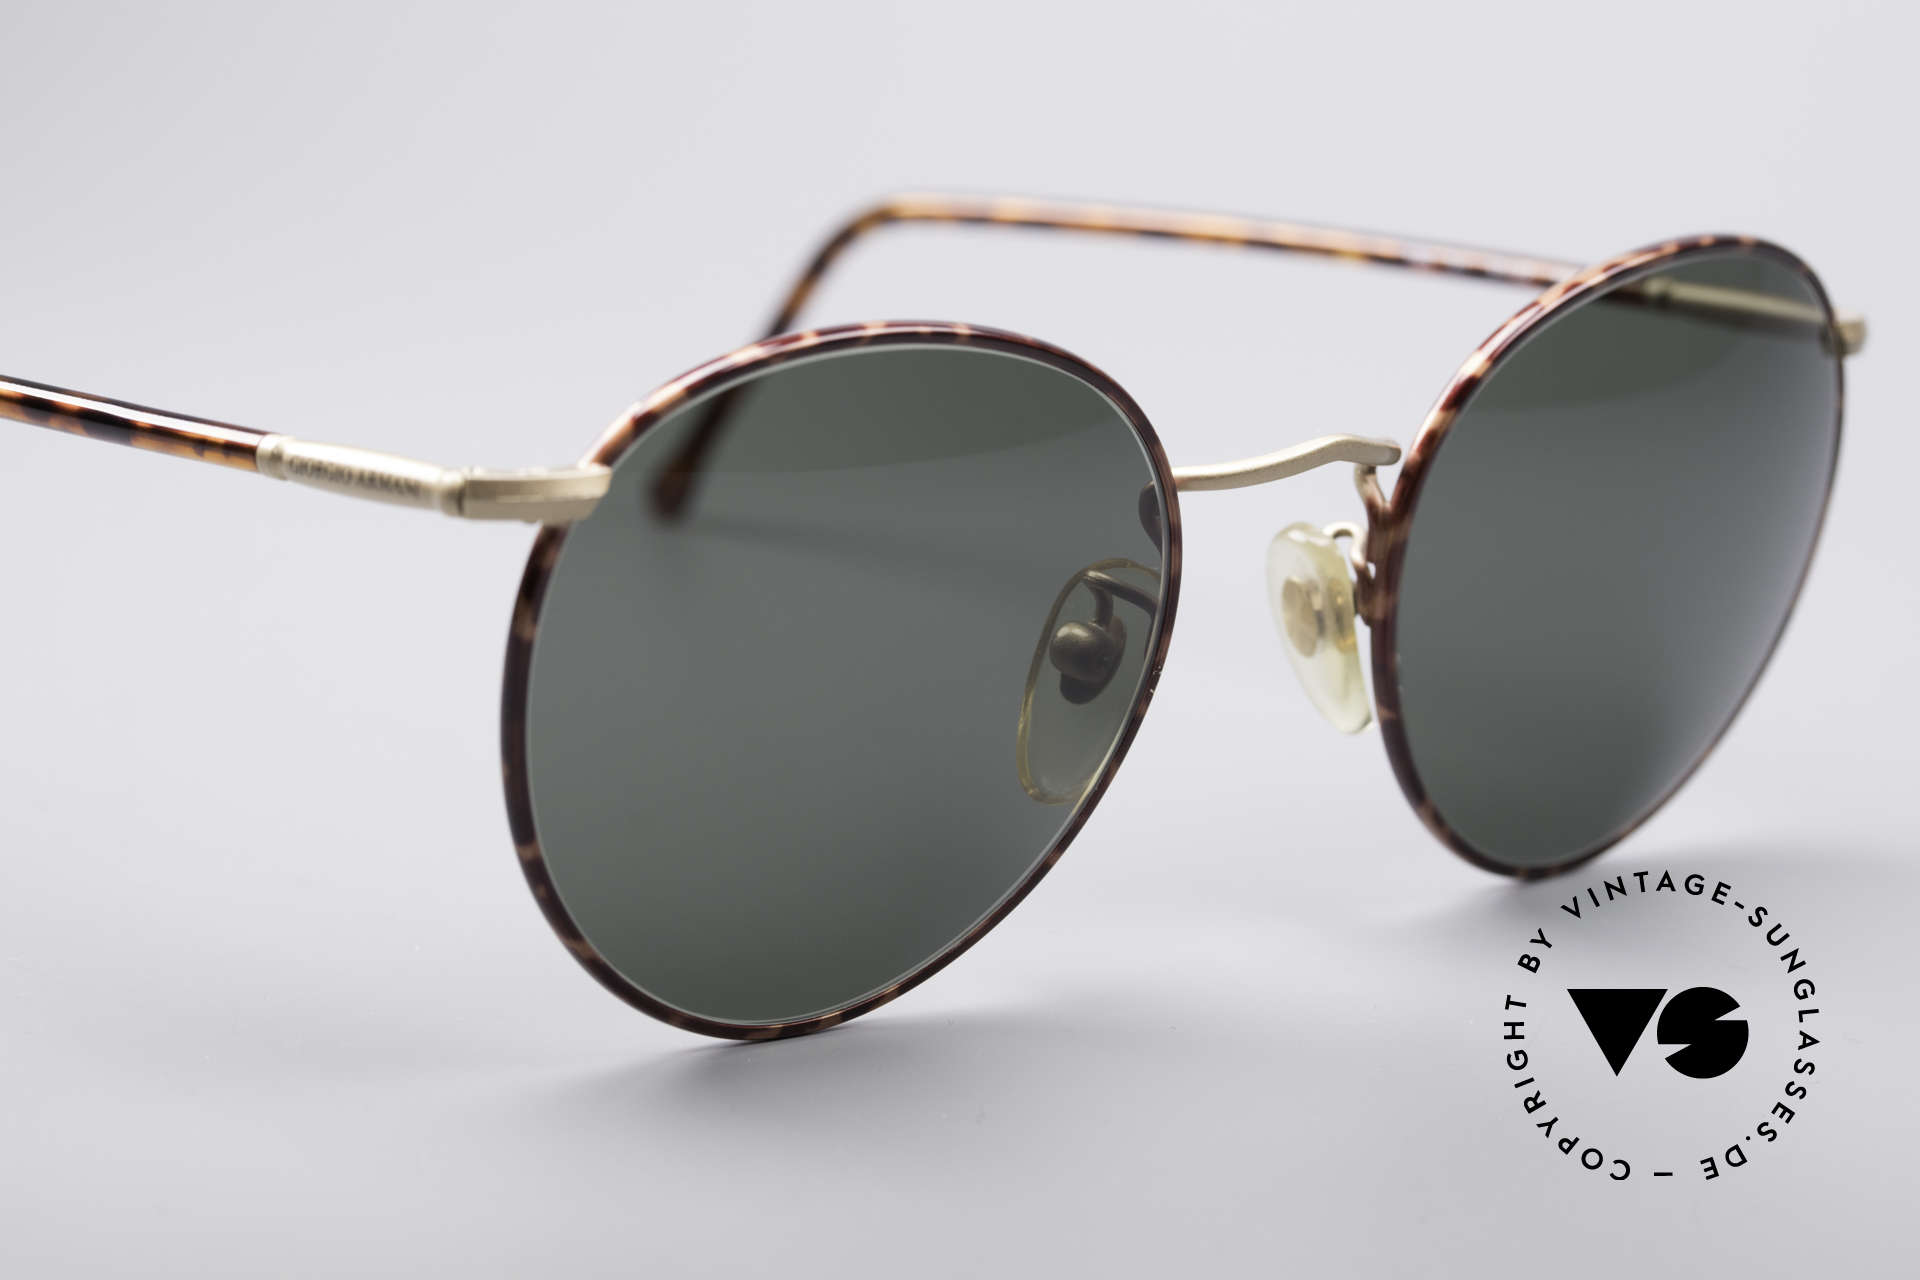 Giorgio Armani 186 Classic 90's Panto Glasses, unworn rarity (like all our vintage designer shades), Made for Men